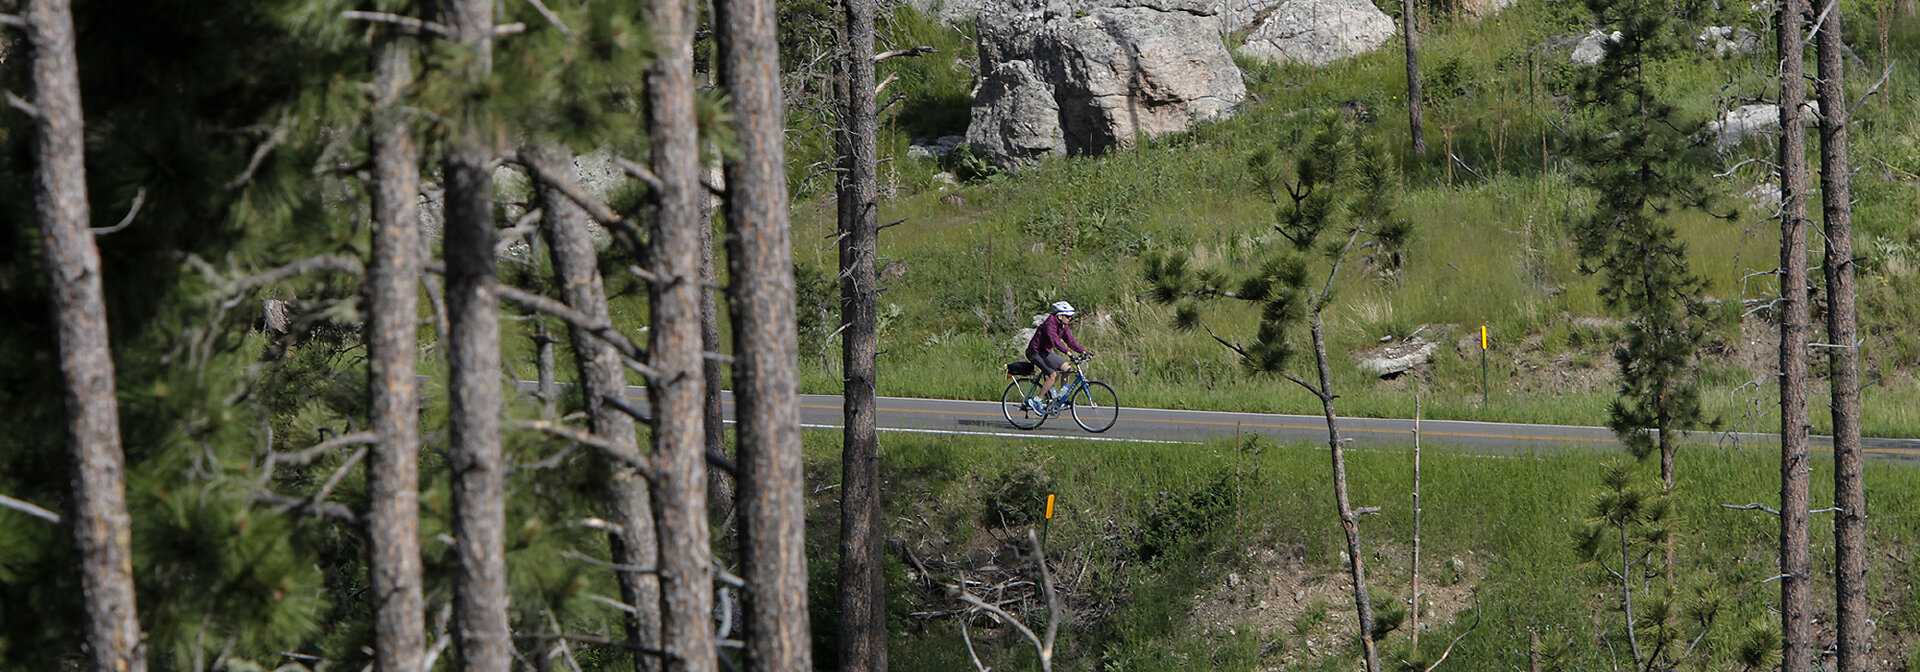 Kathy on the Needles Highway, South Dakota bike tour